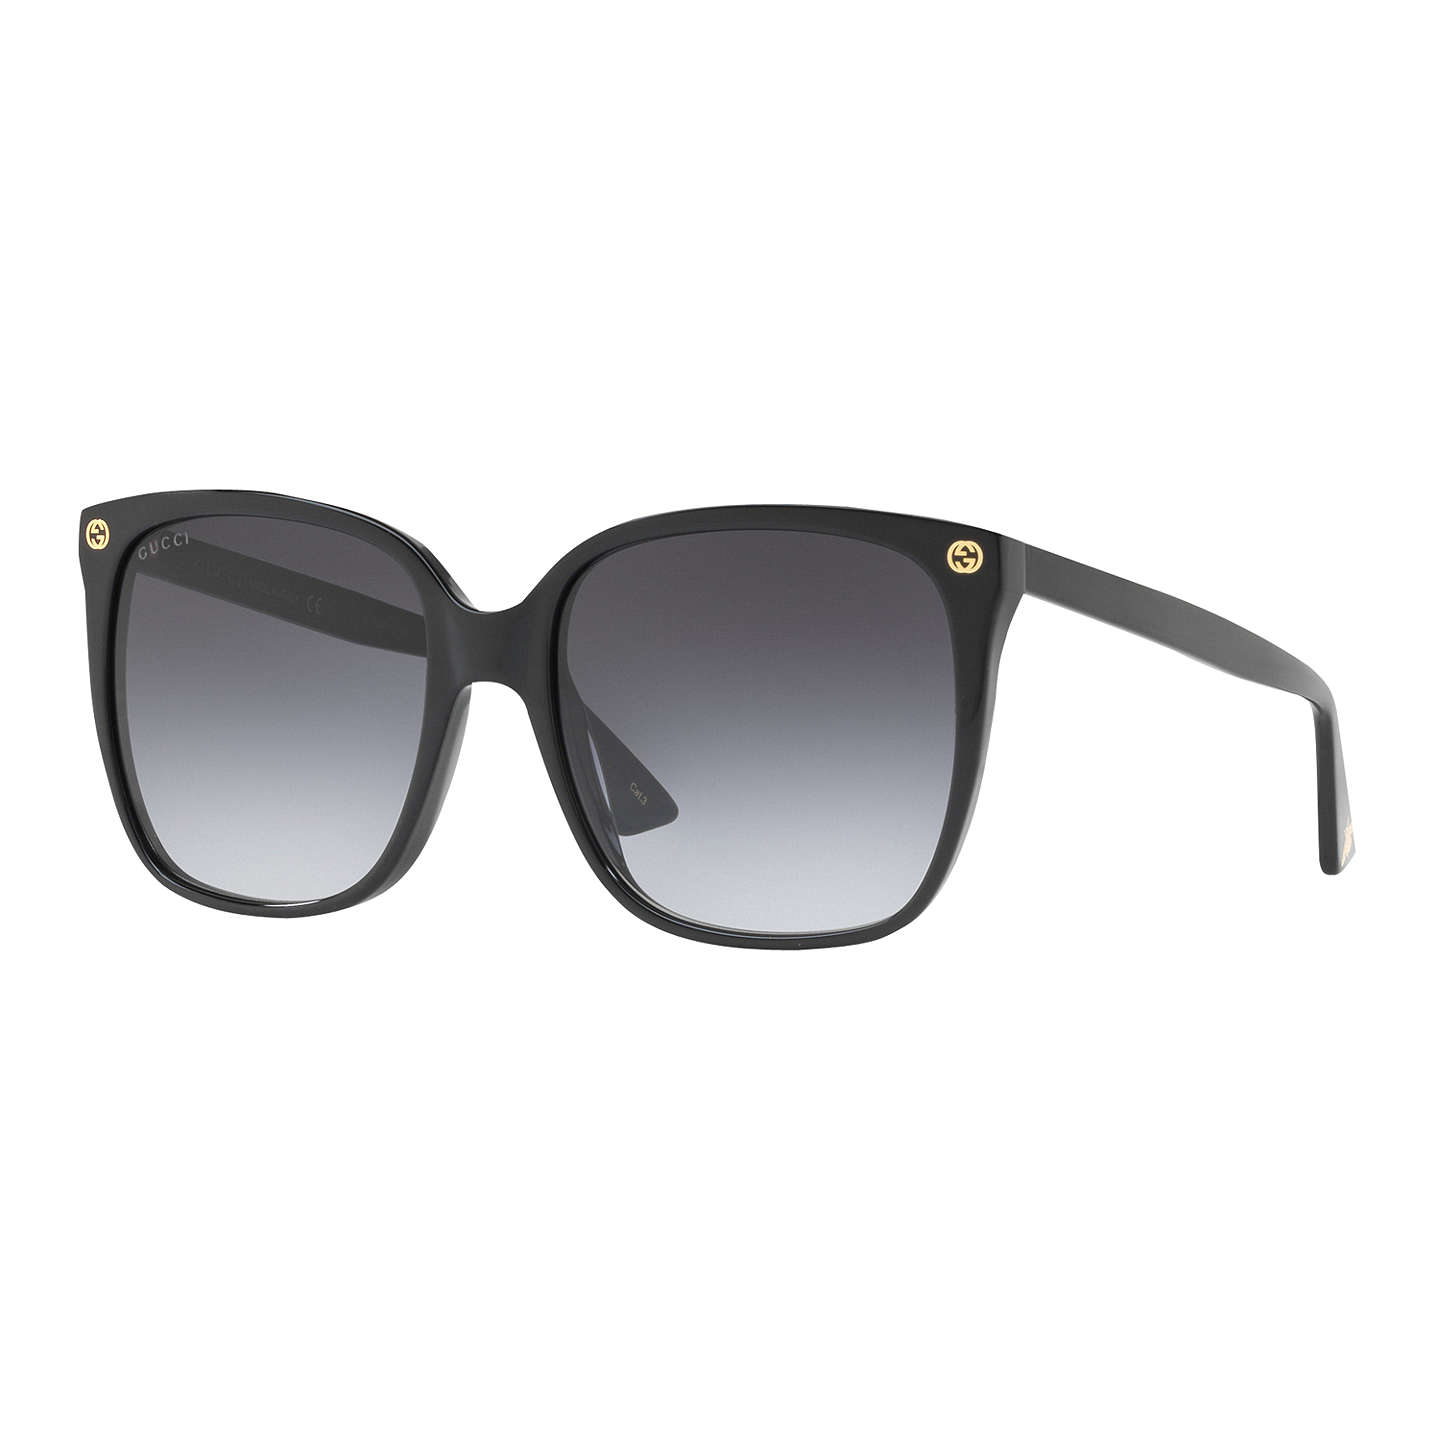 Gucci Gg0022 S Square Sunglasses, Matte Black/Grey Gradient by Gucci